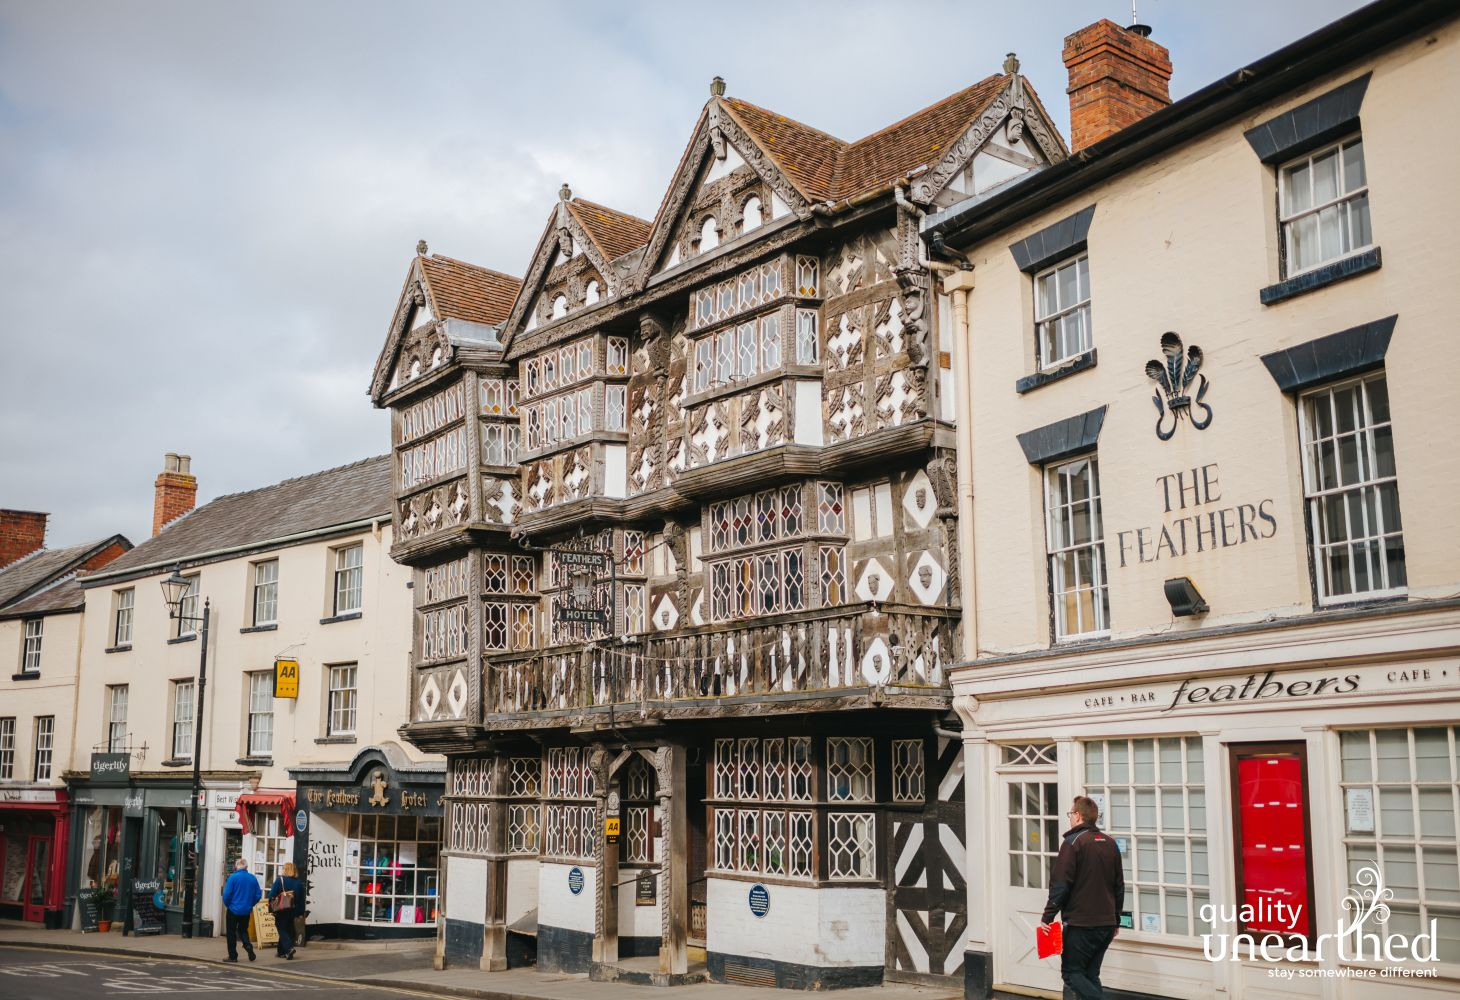 The Feathers Hotel in Ludlow is a fine example of a 16th century timber building